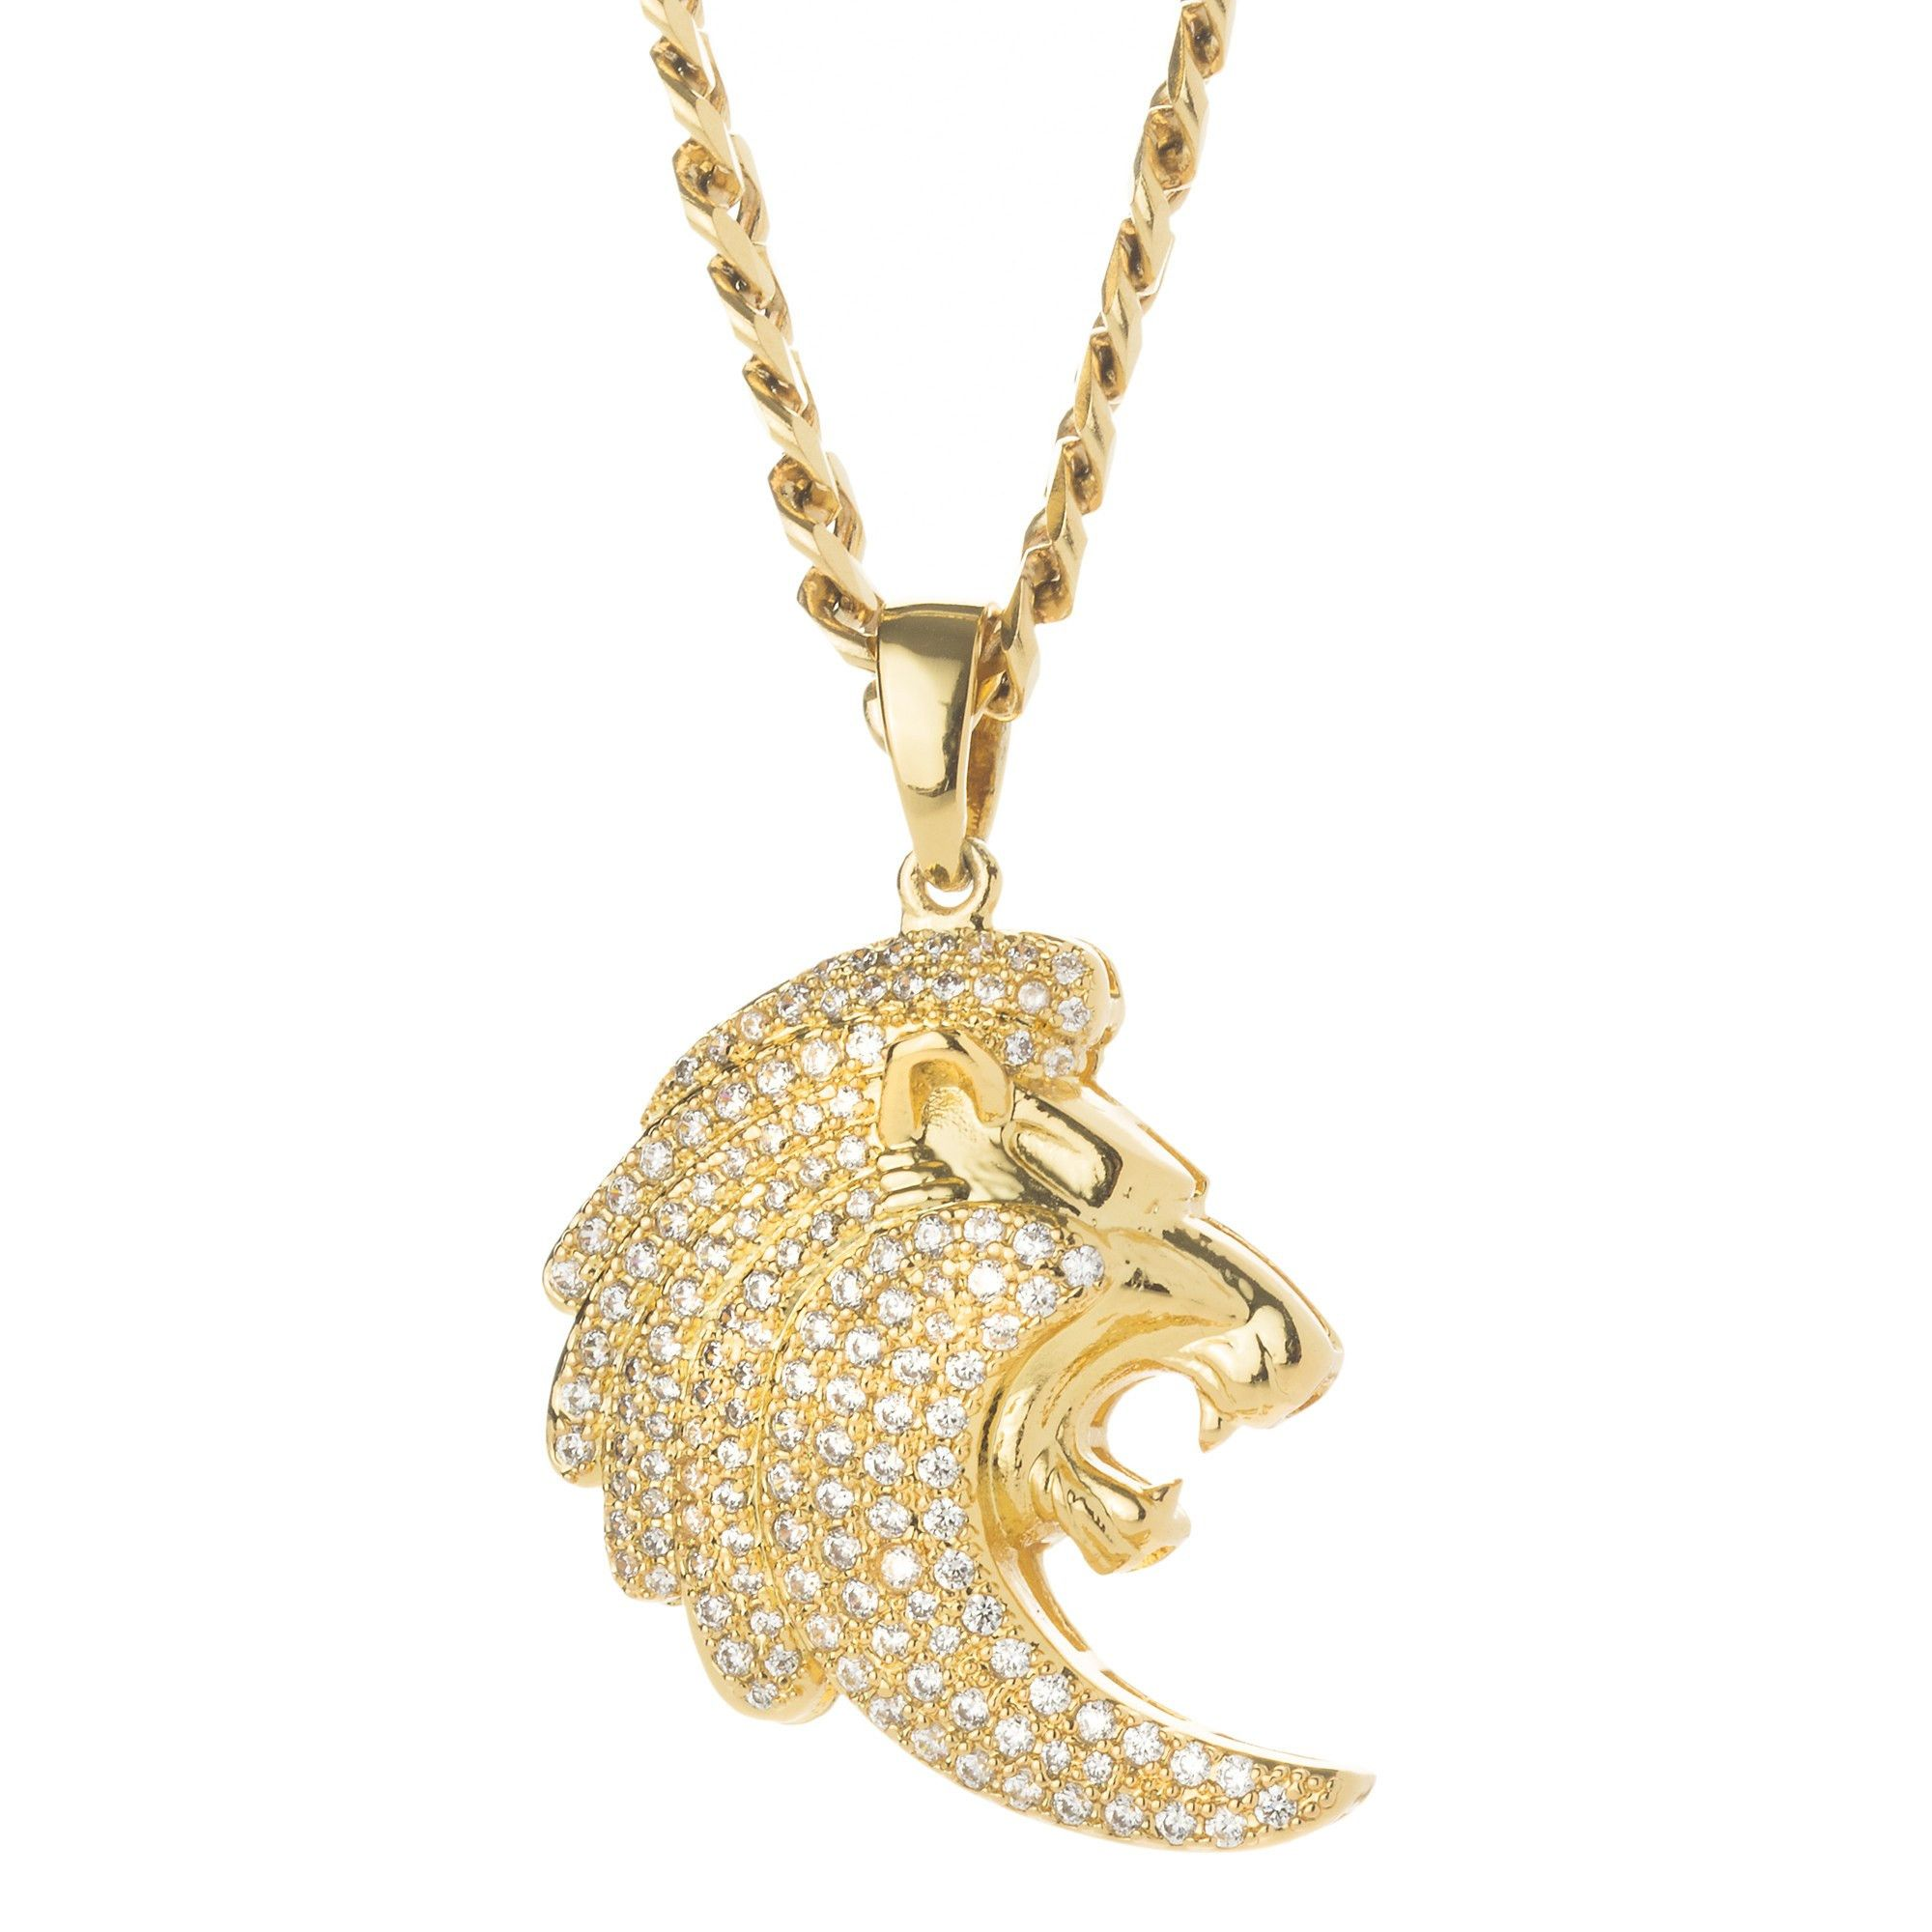 jewelry silver pendant watches product bcbc diamond sterling today overstock and over chain free accent shipping palmbeach lion gold